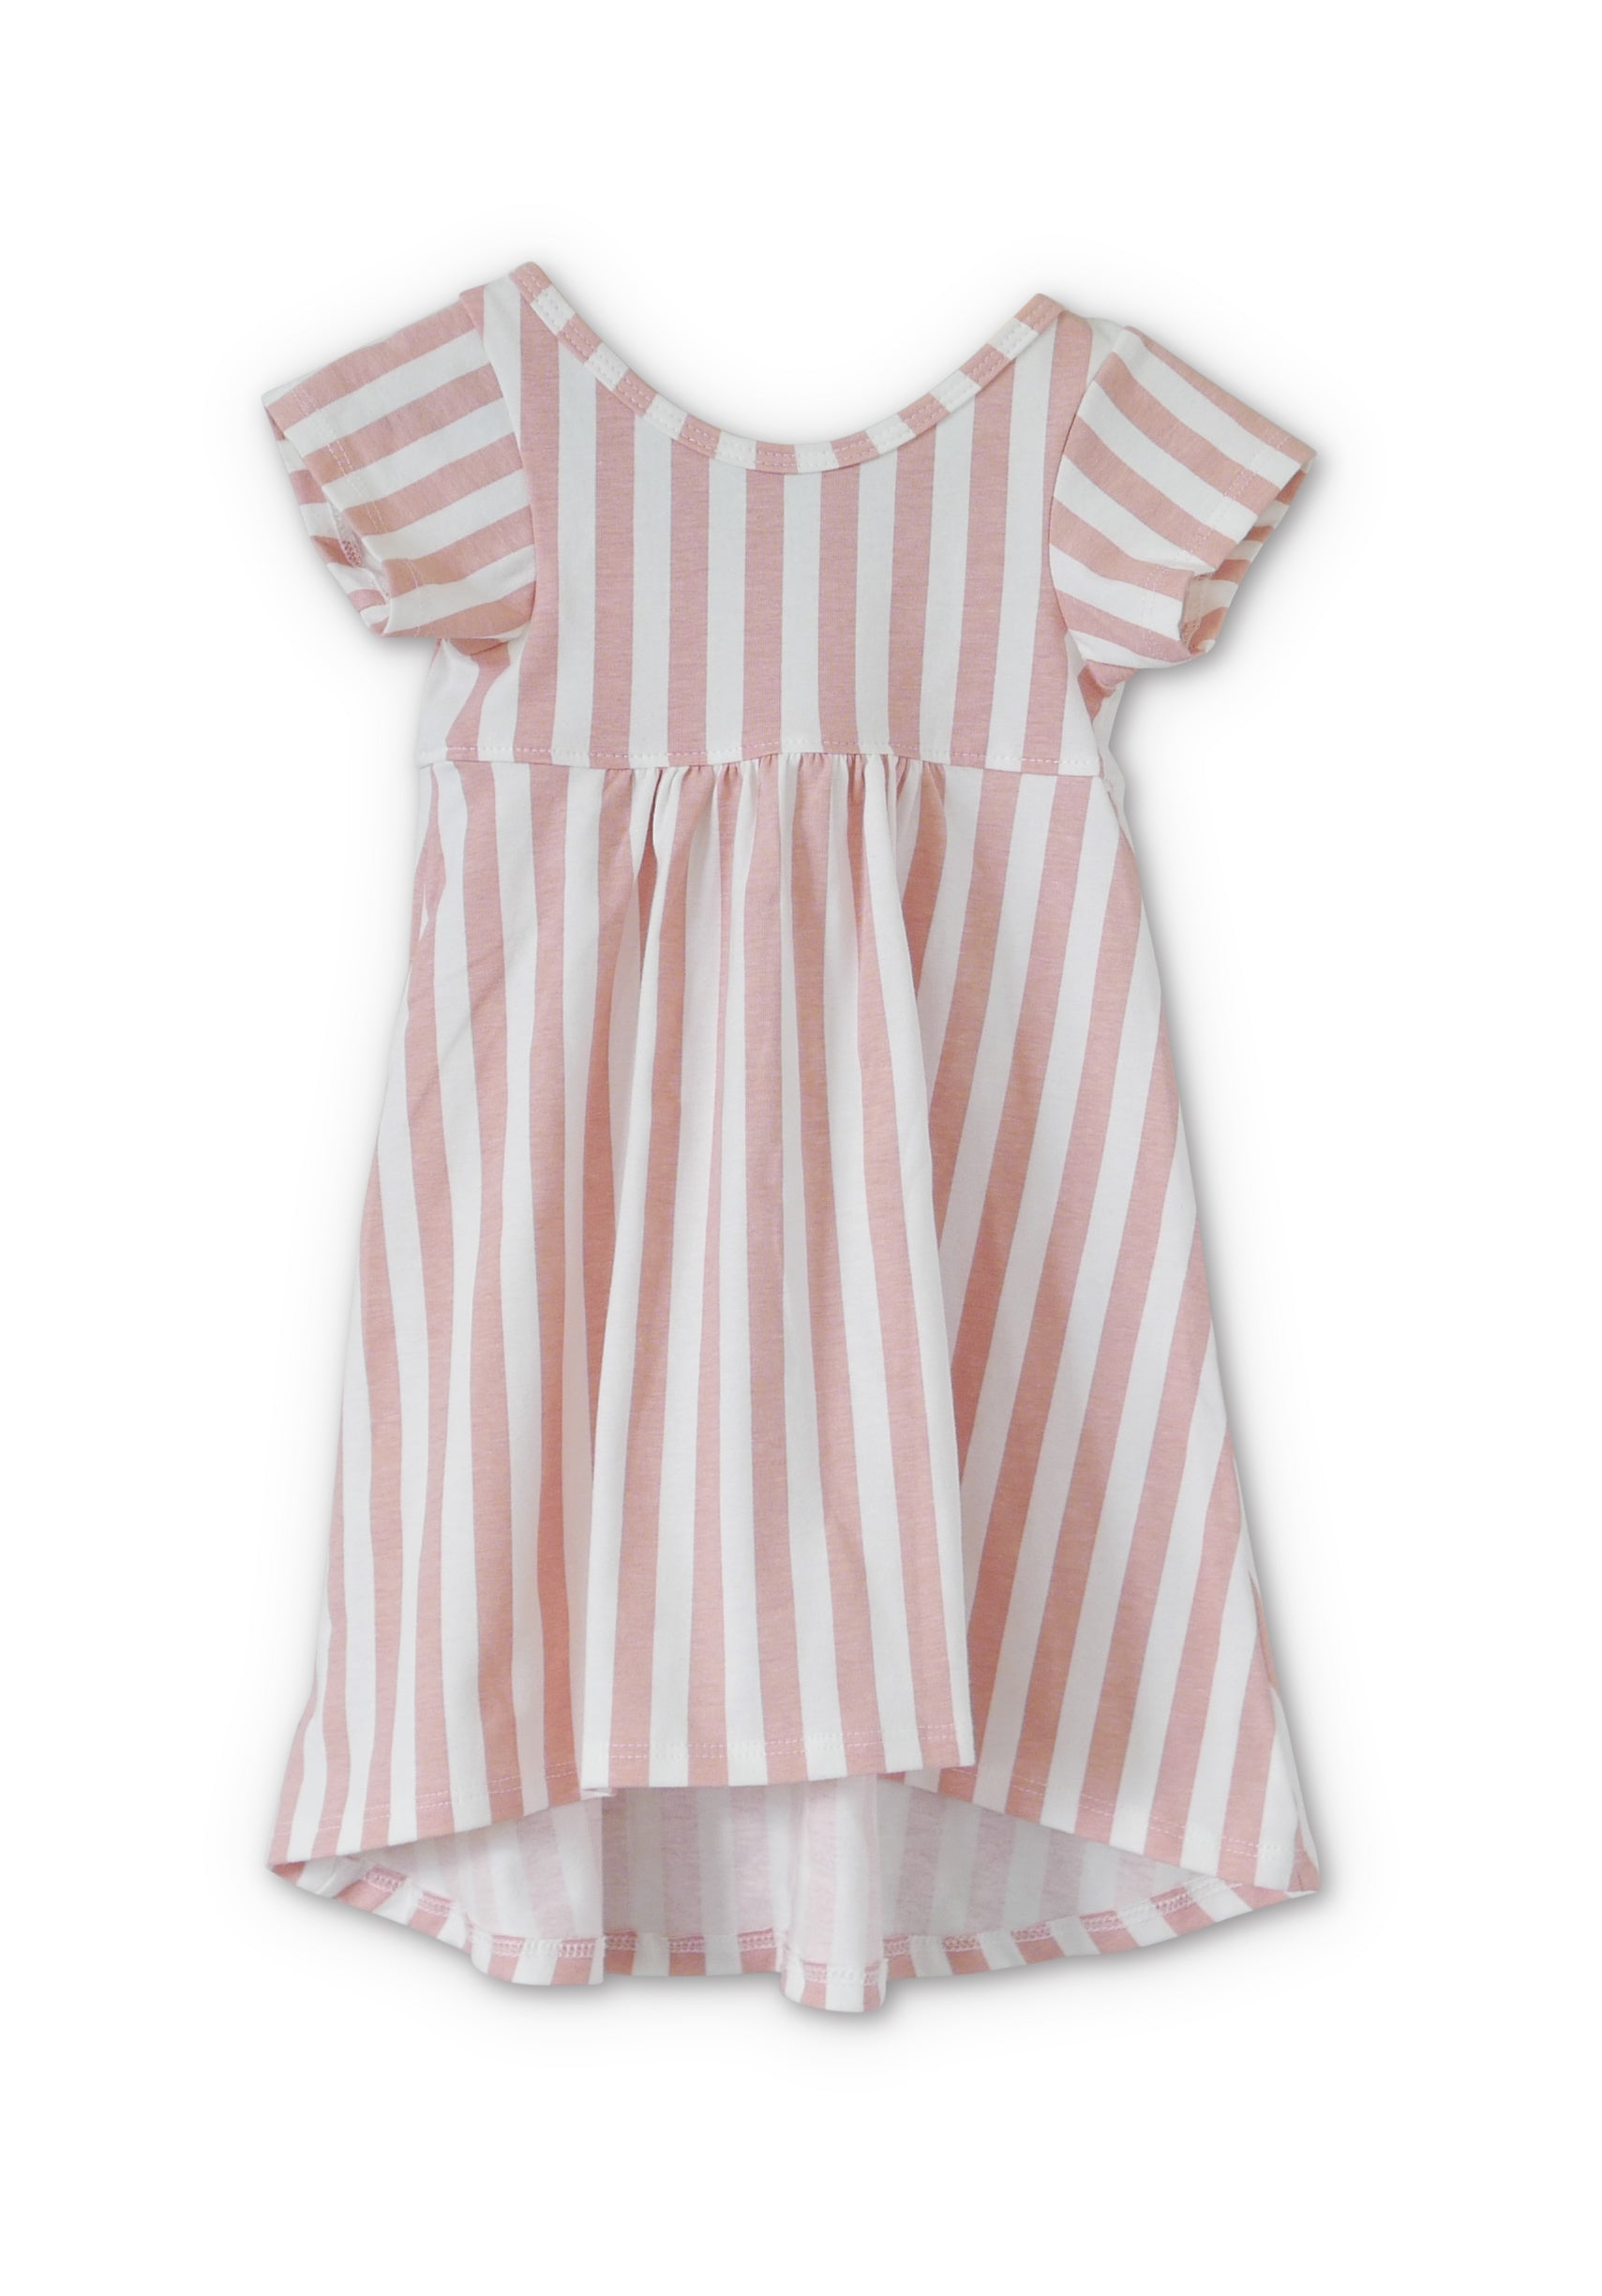 Strawberry Stripe - Everyday Dress